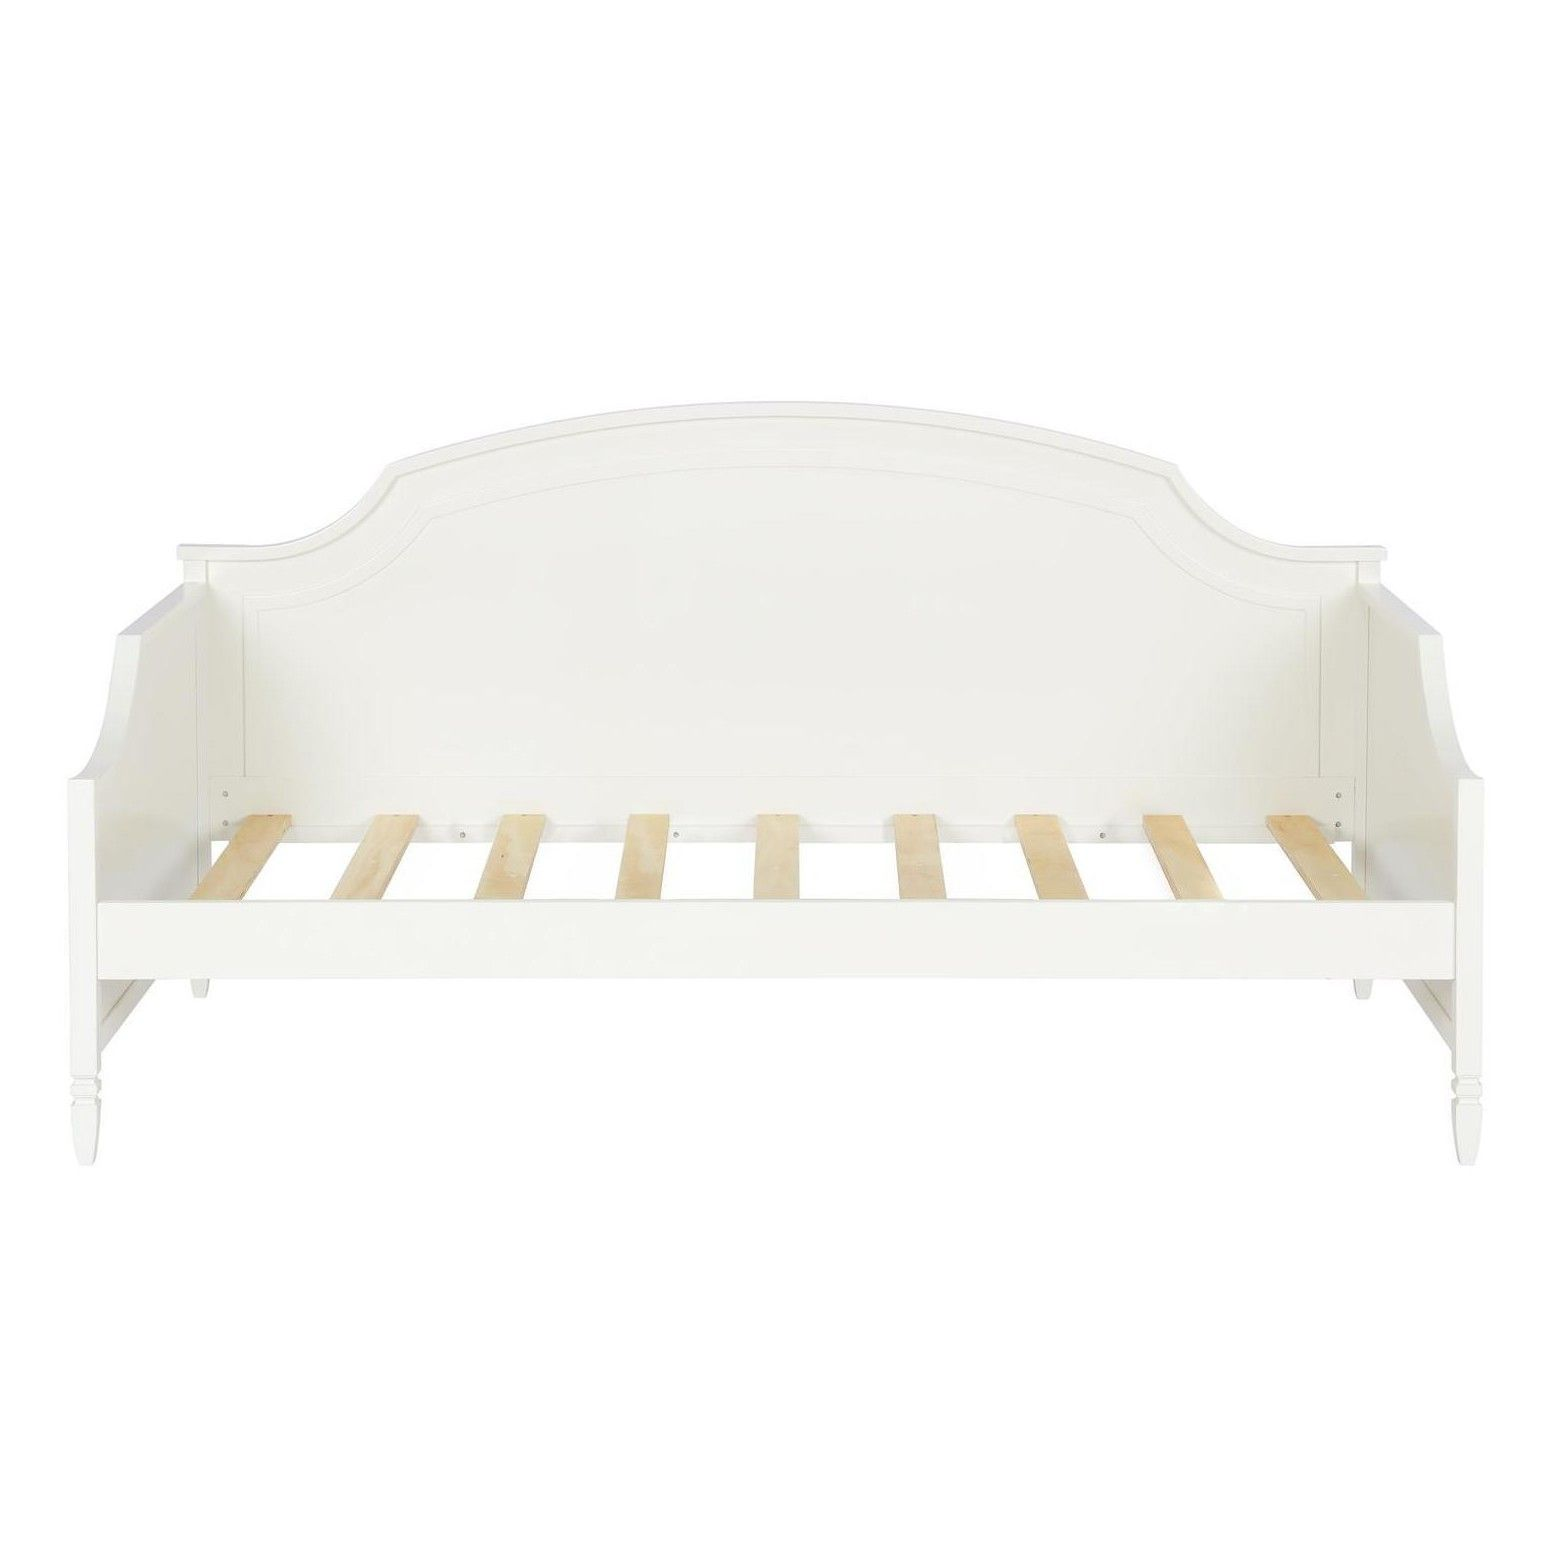 The Finn Kids Day Bed From Pillowfort Offers A Sophisticated Look That  Works In Both A